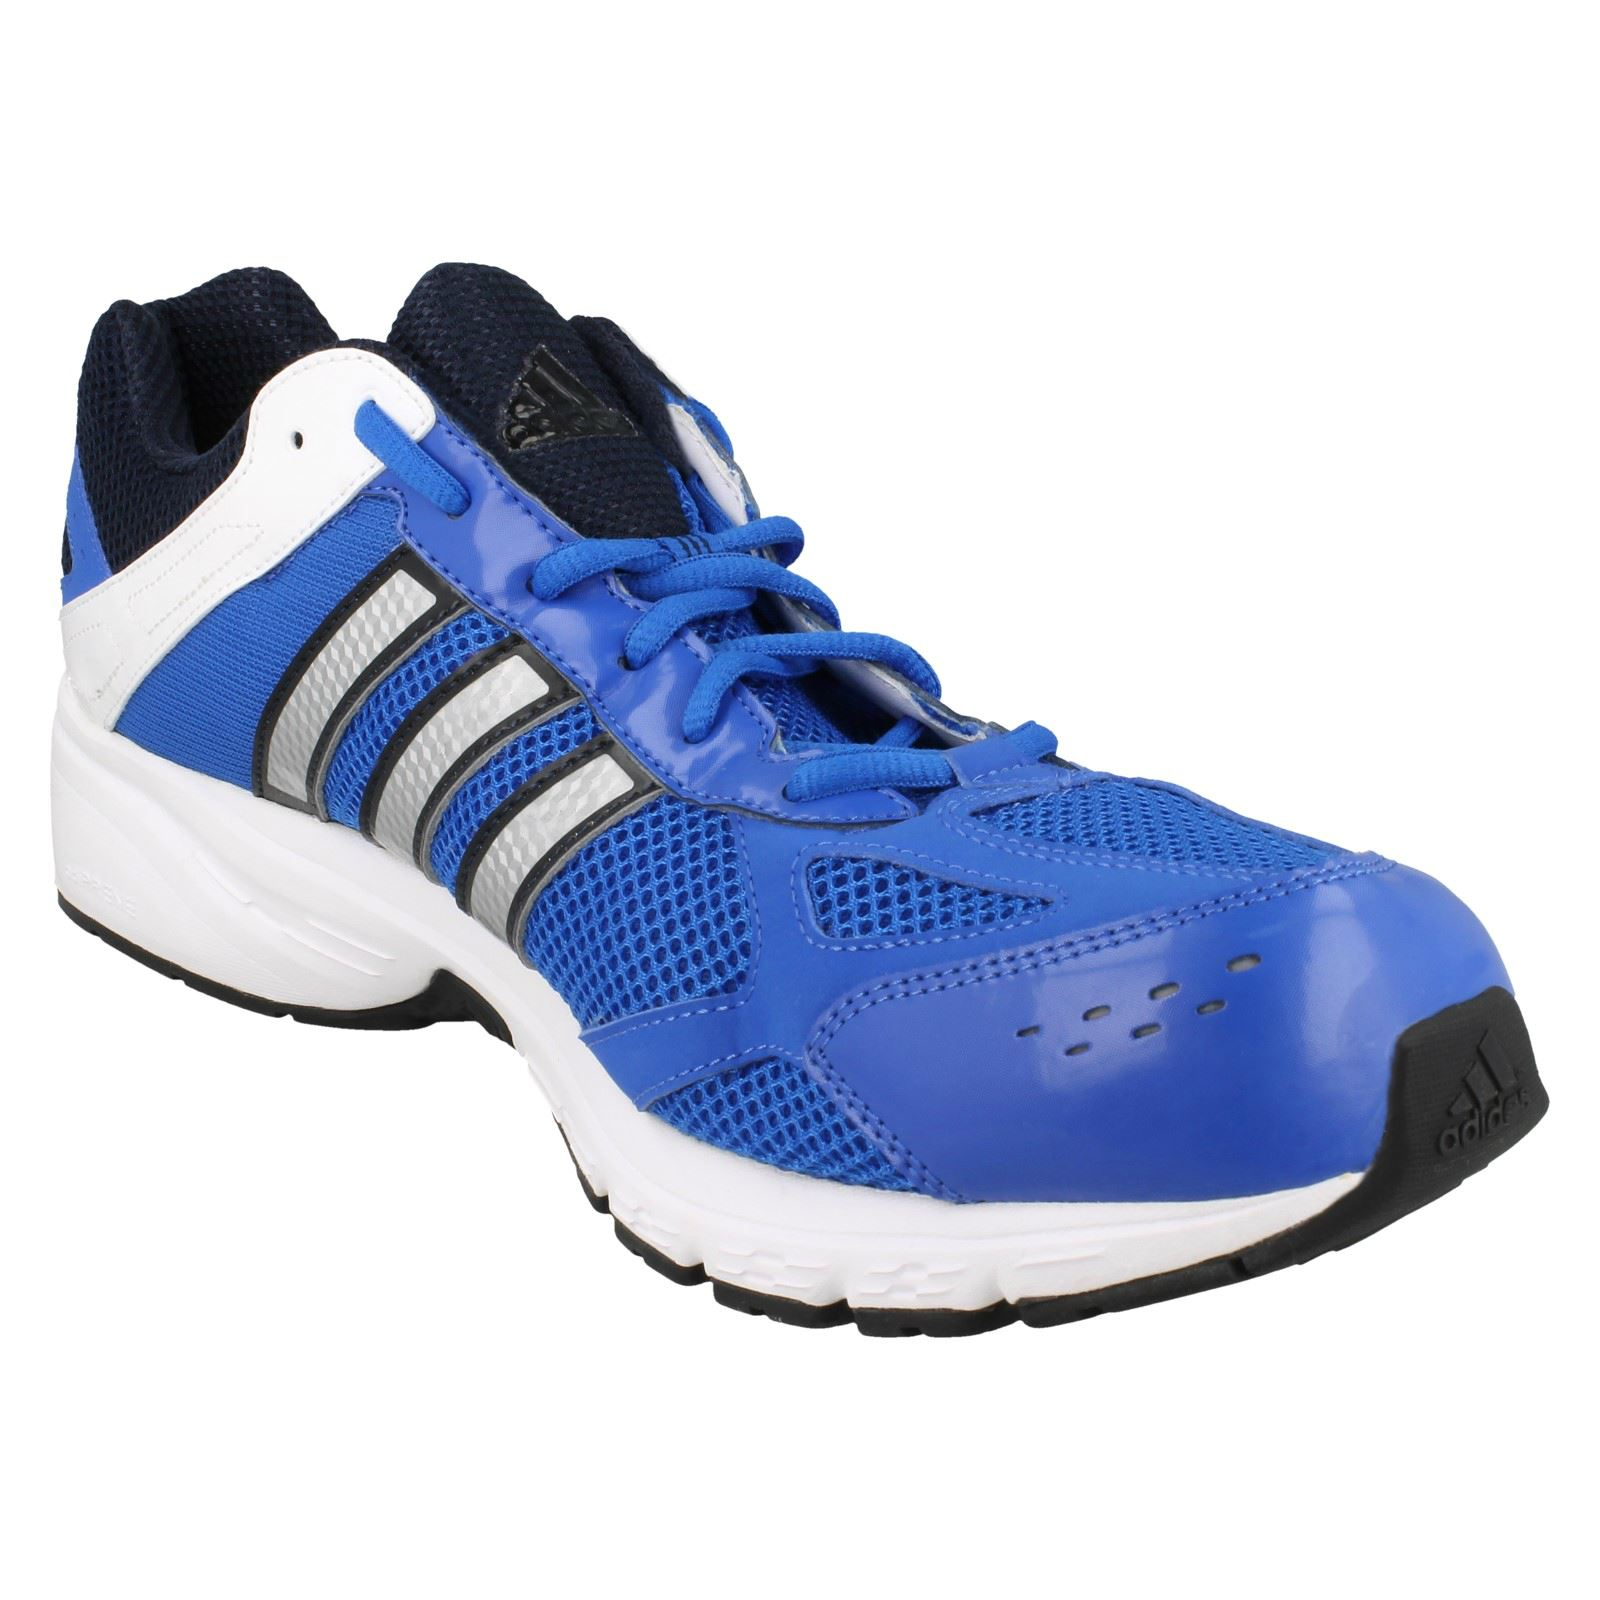 Mens Adidas Lace Up Fastening Running Trainers - 'Duramo